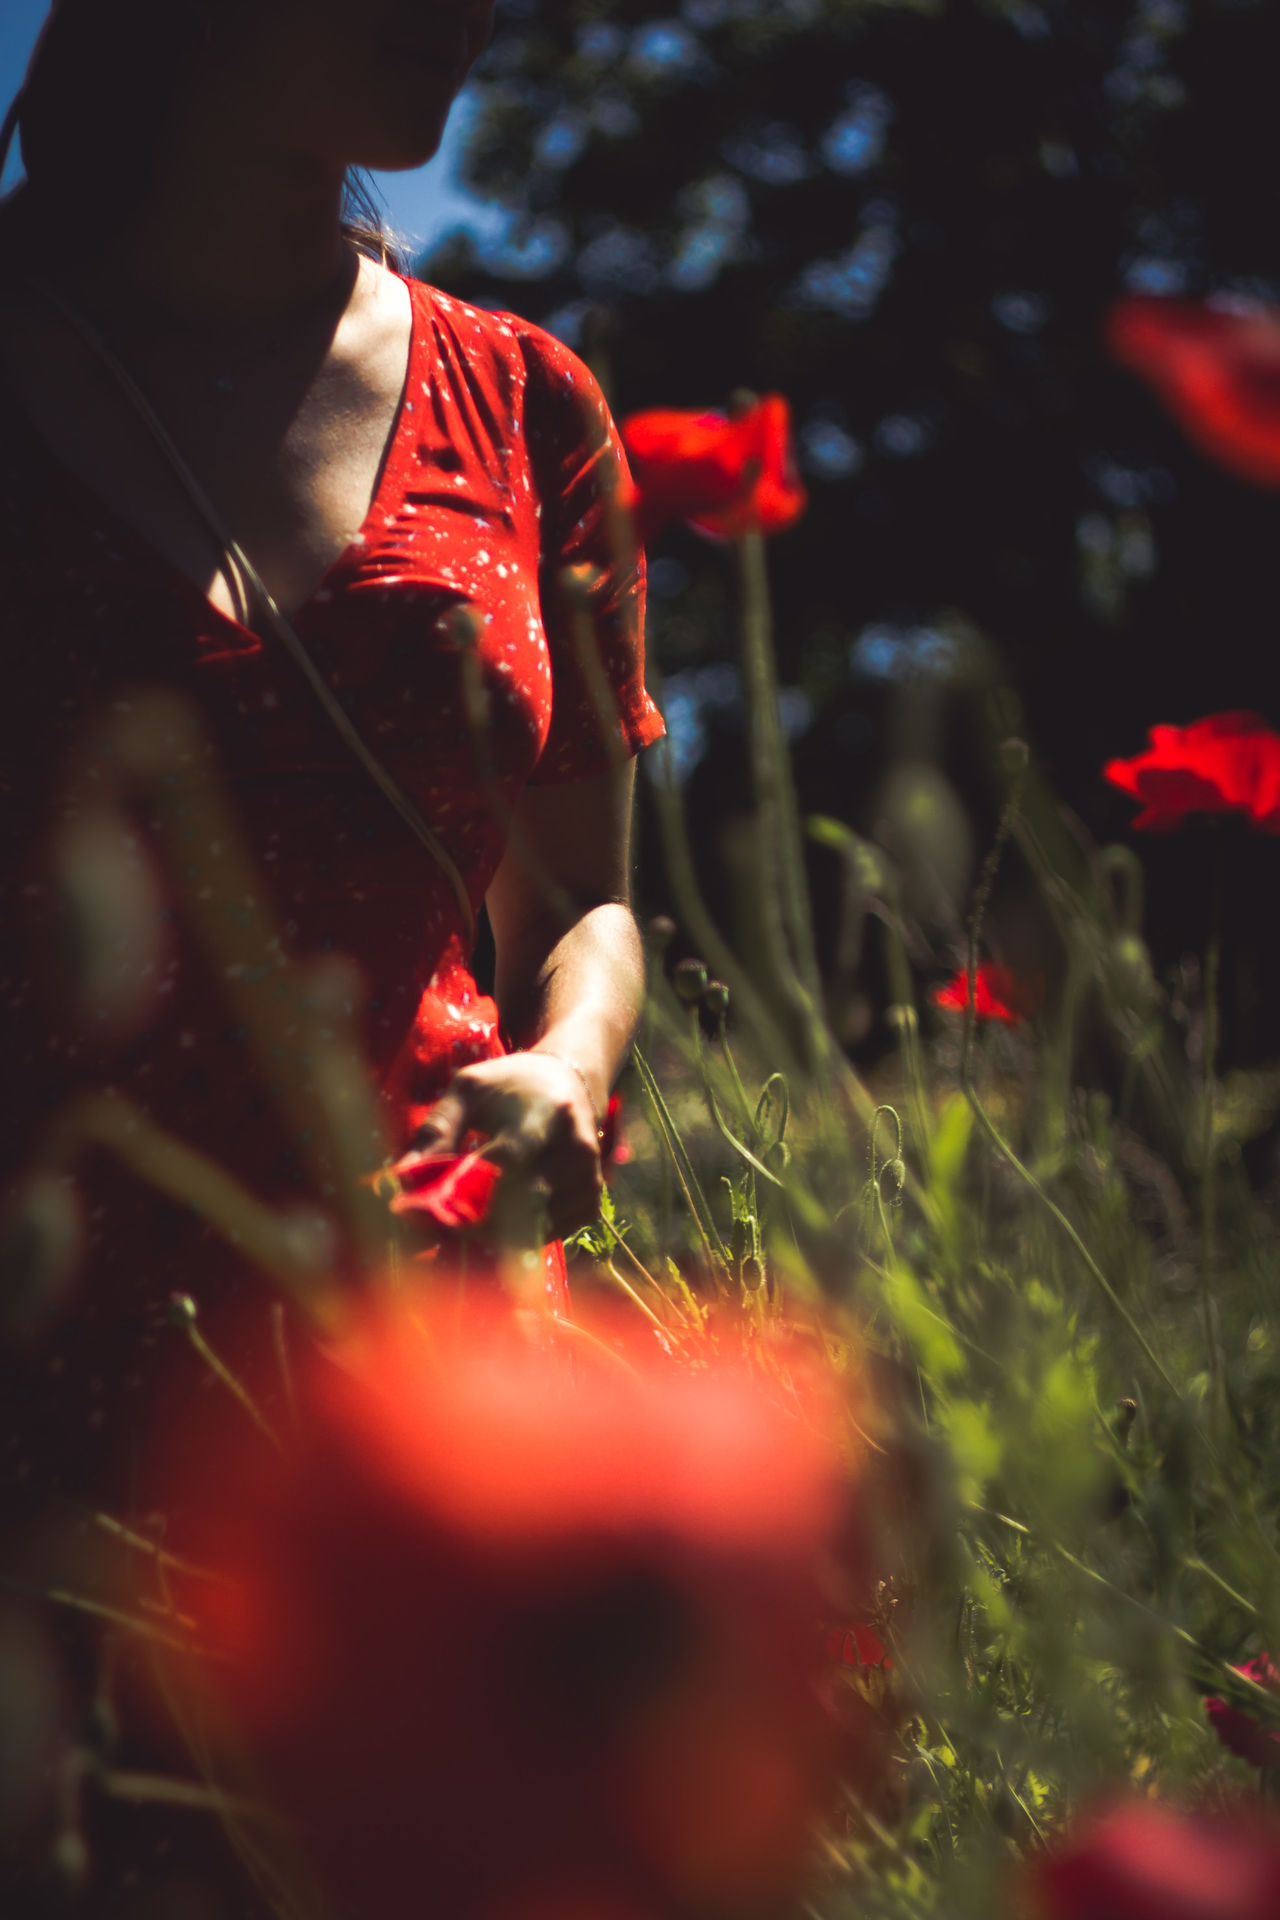 Close-up Day Growth Nature One Person Outdoors People Poppy Flowers Real People Red